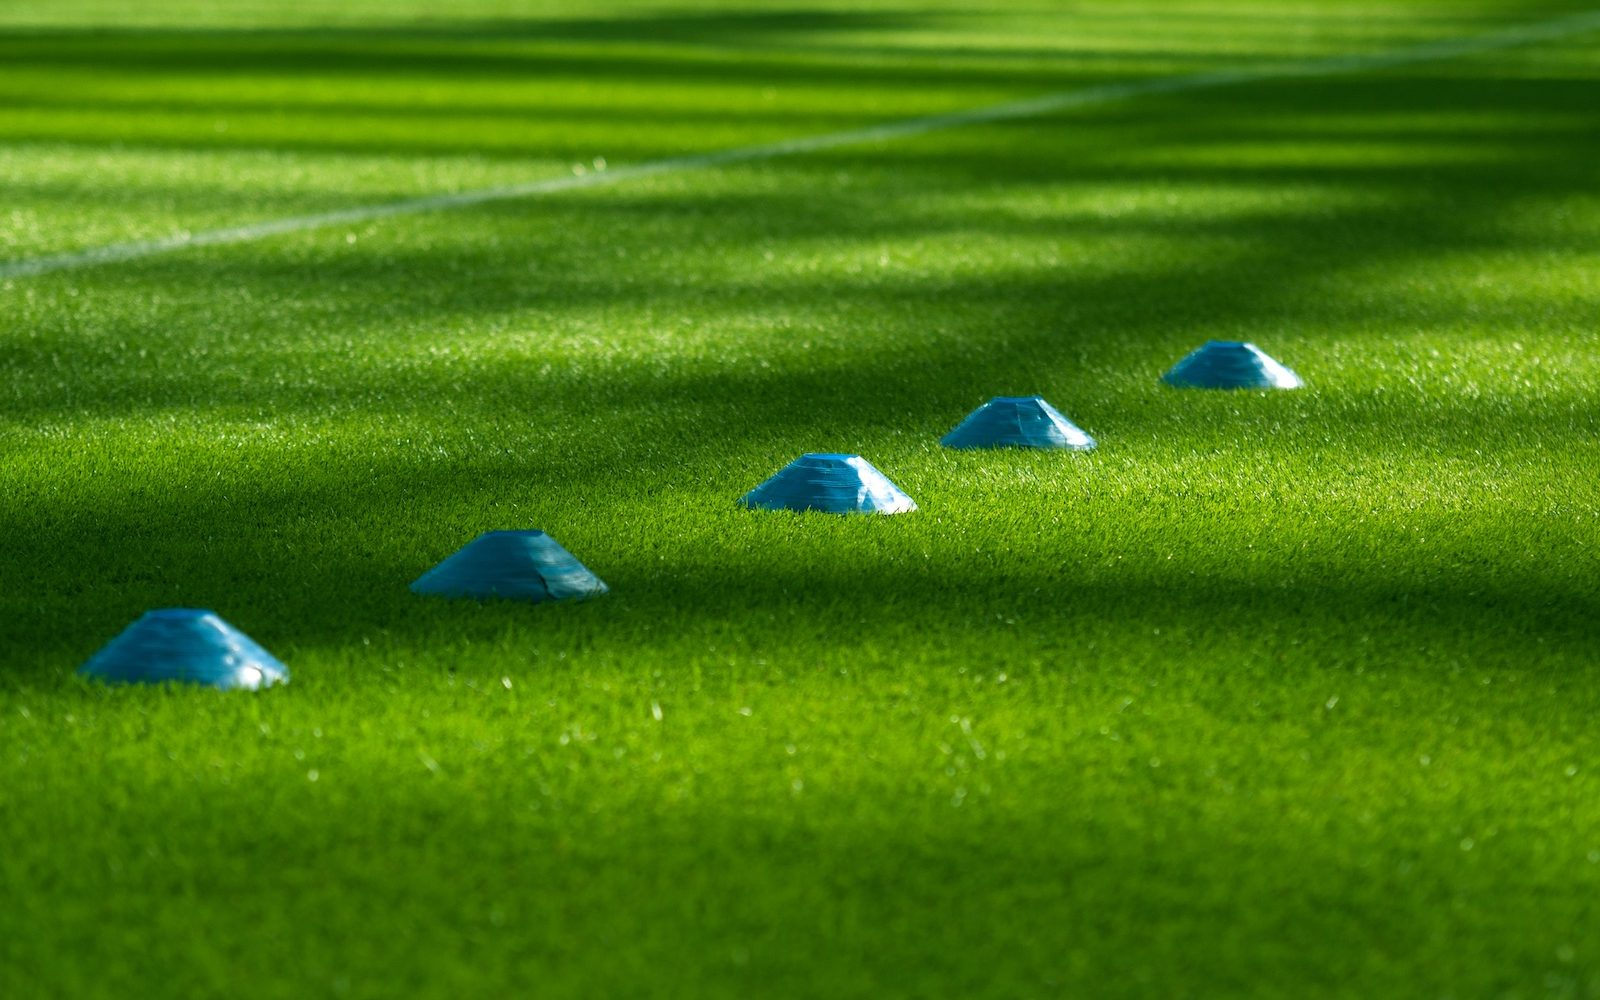 Cones on green grass